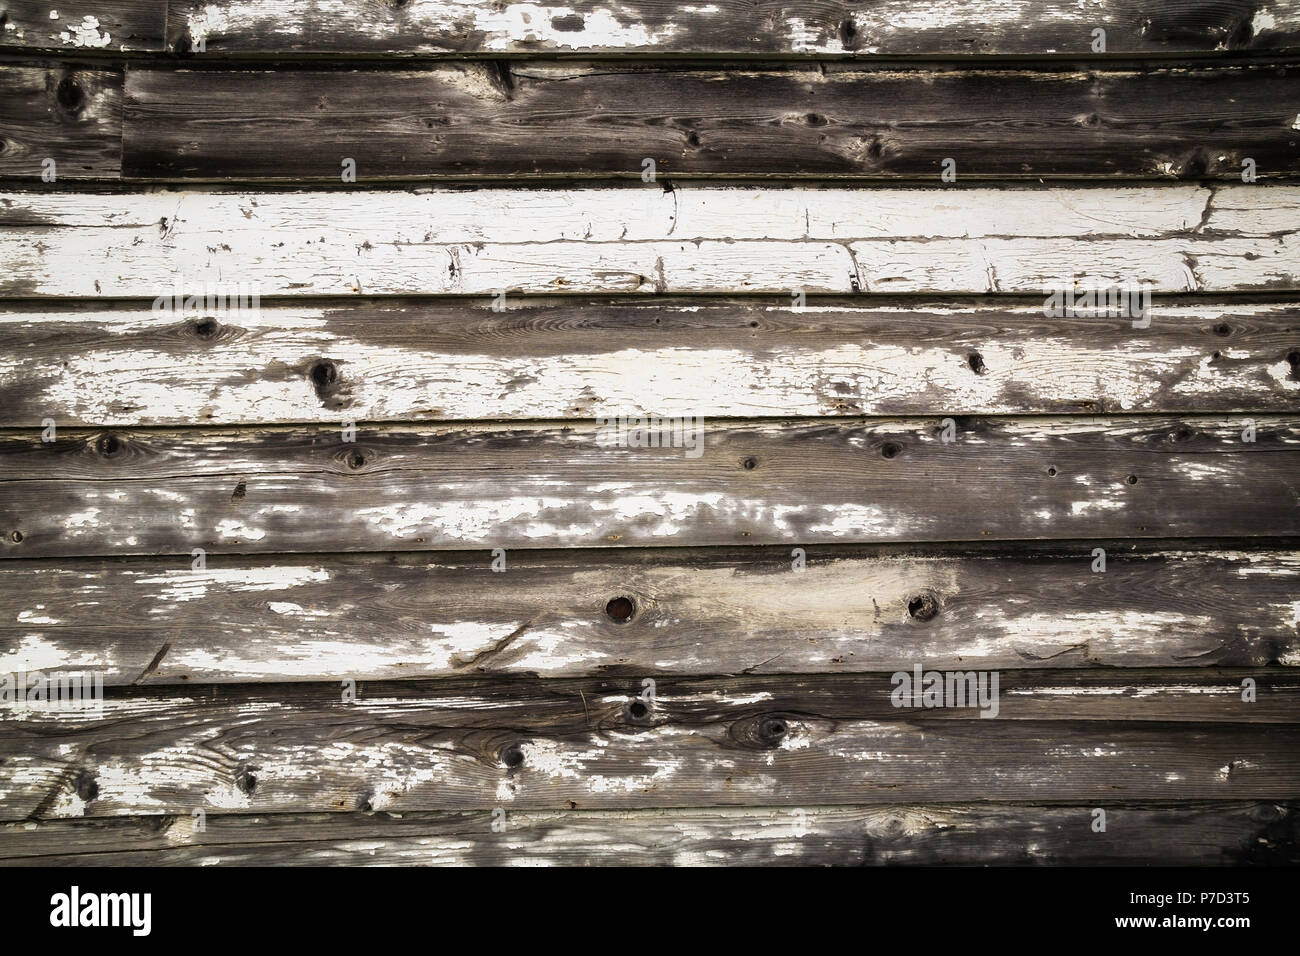 Close-up of old wooden grey and white painted barn wood planks, background image - Stock Image